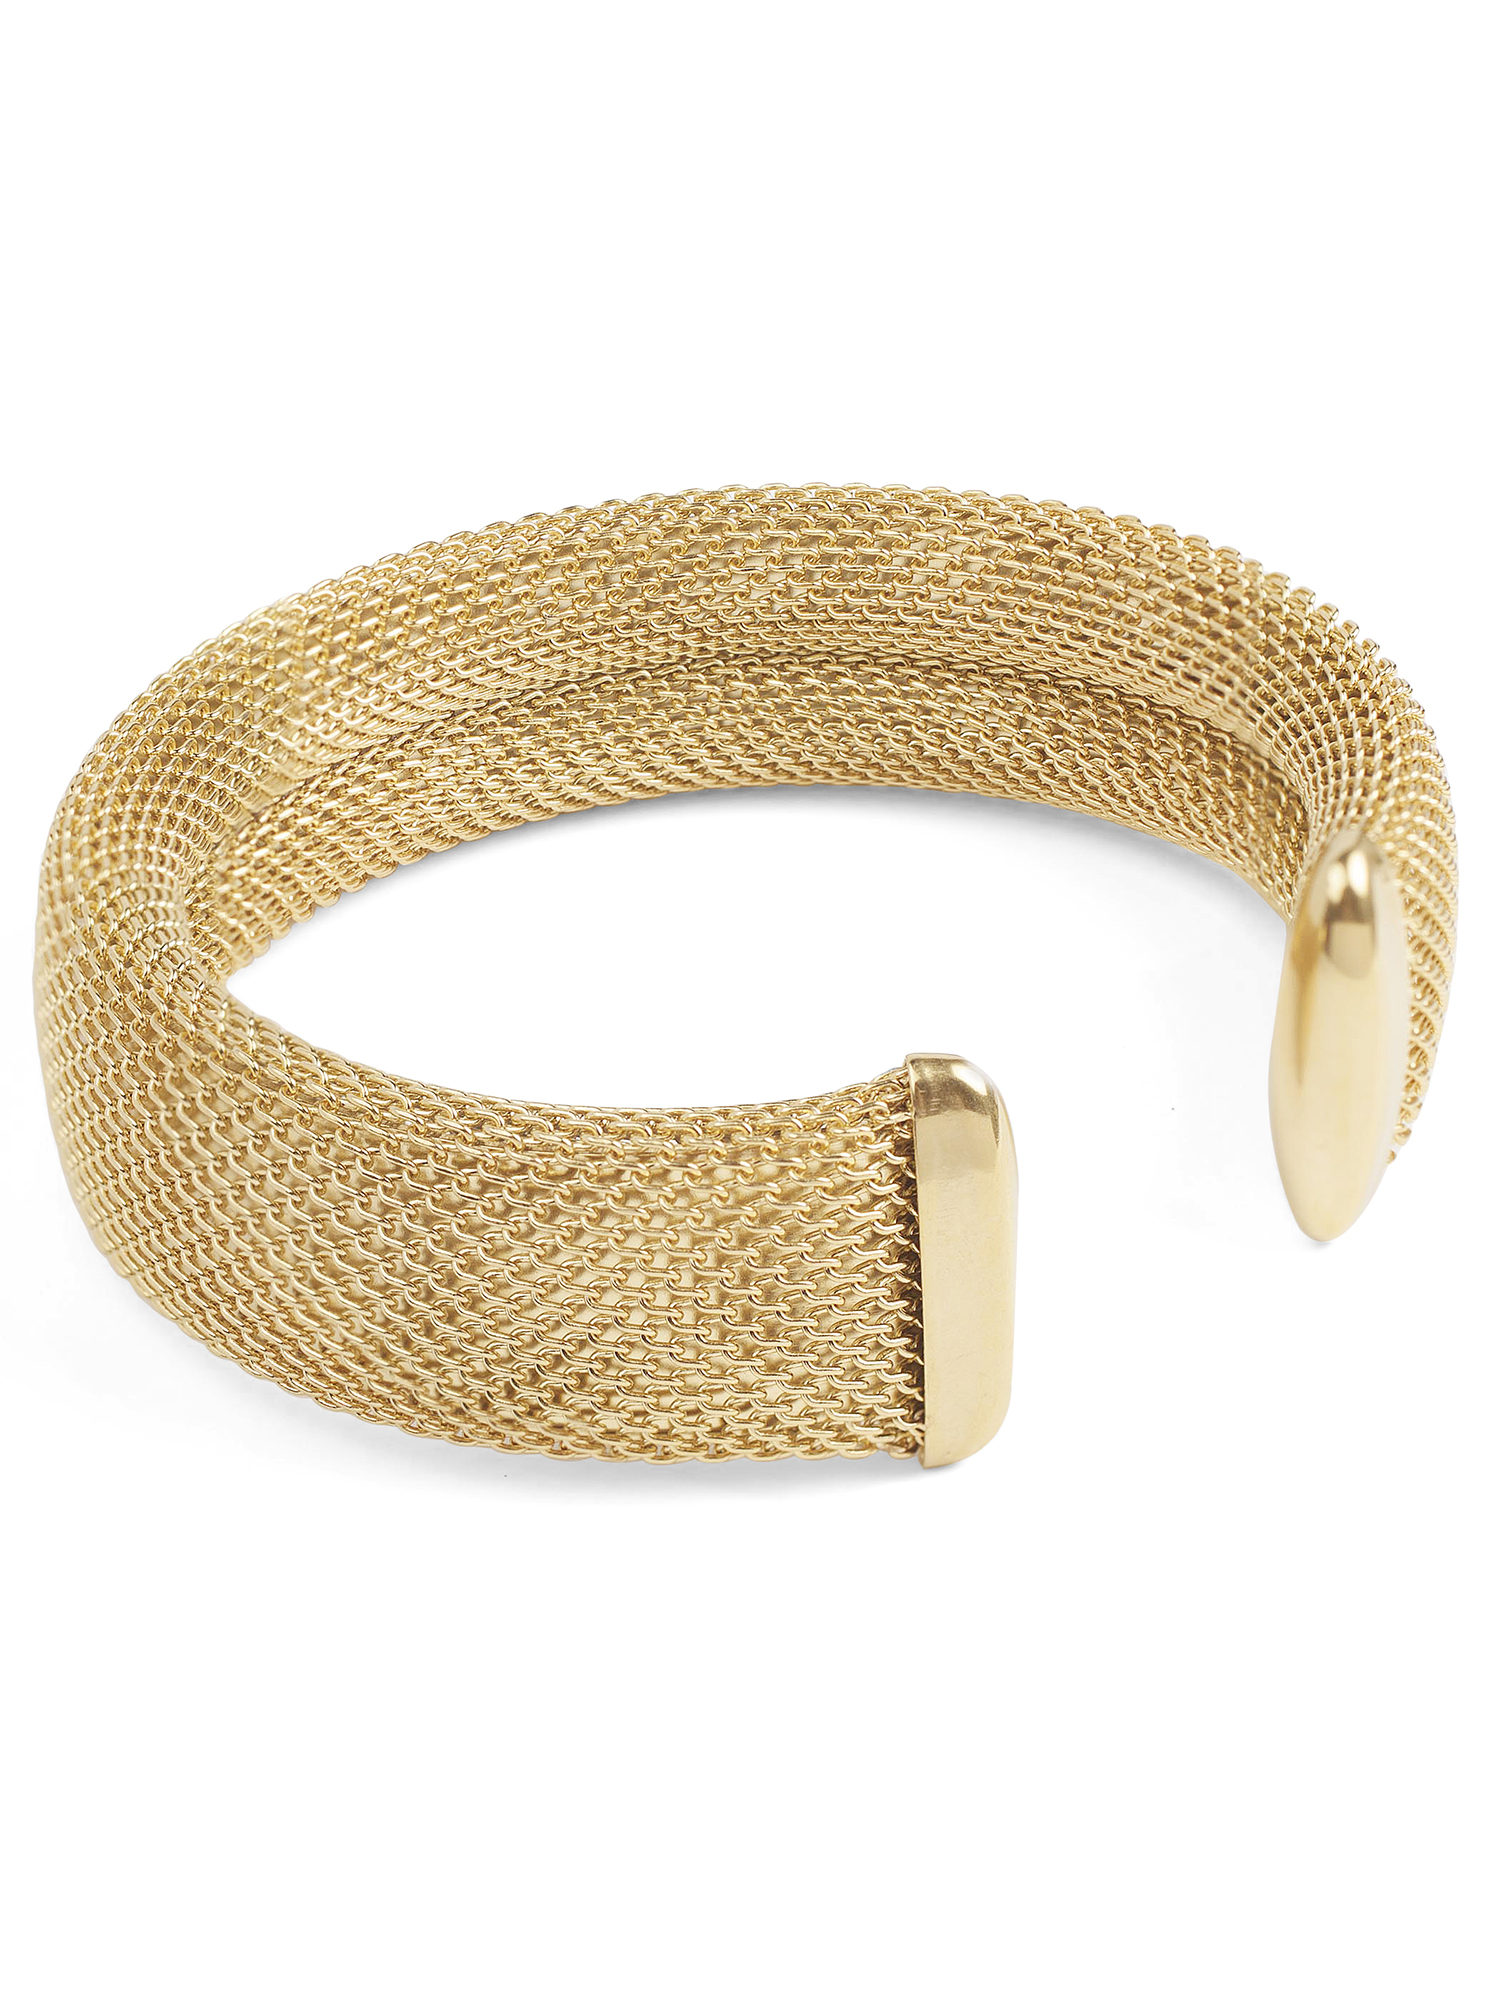 Women's Gold Stainless Steel Mesh Cuff Bracelet